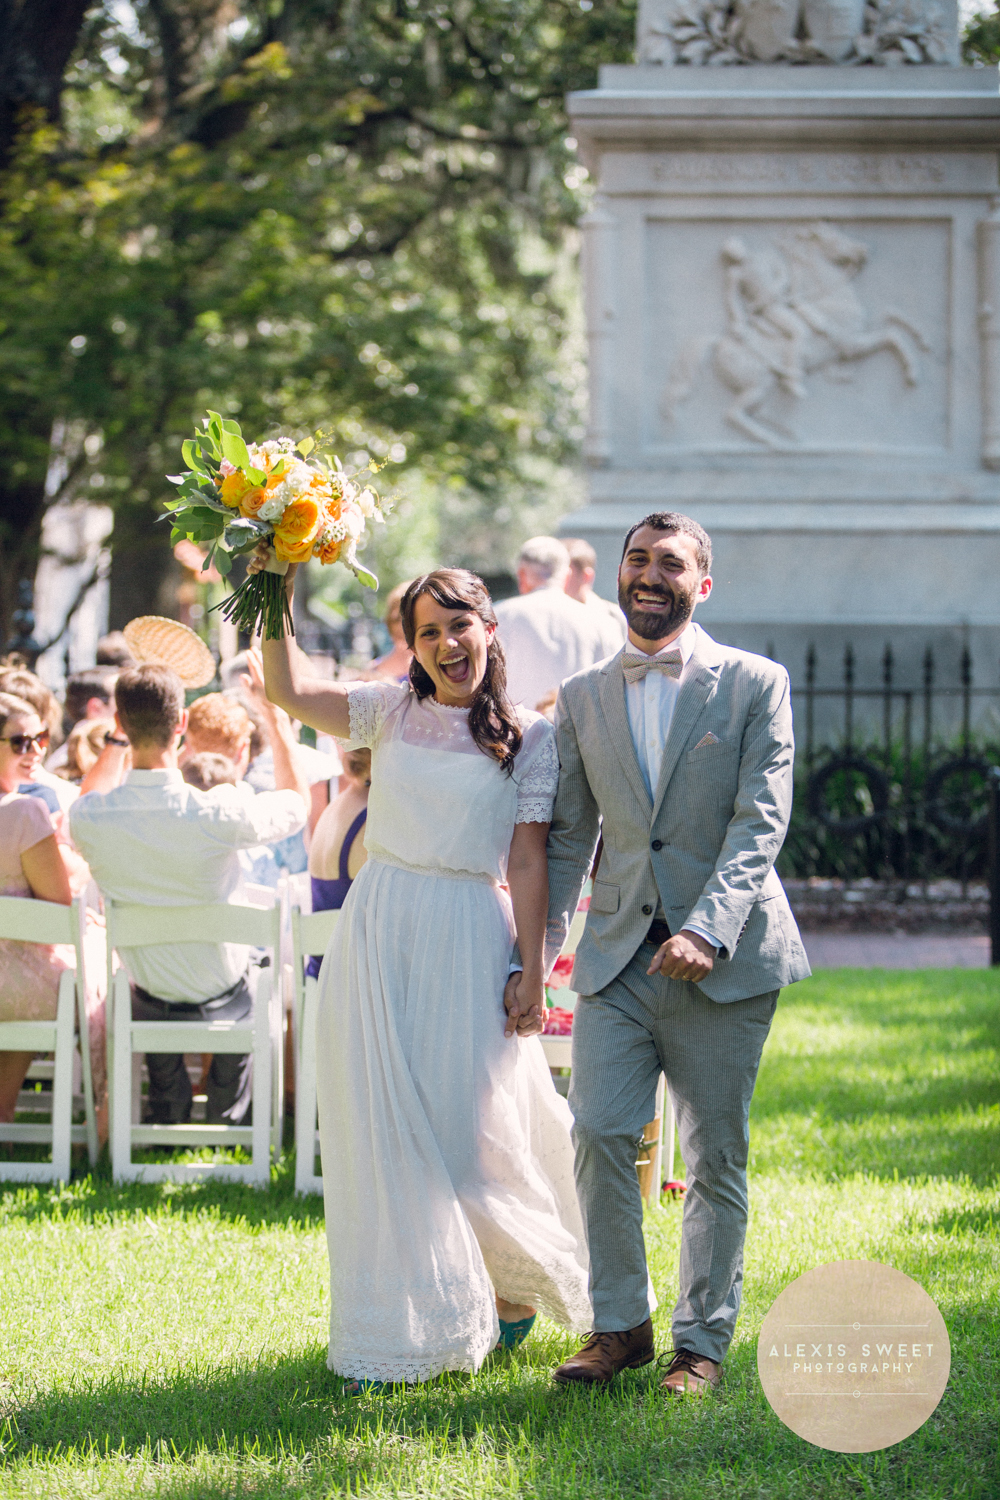 alexis-sweet-photography-ivory-and-beau-bridal-boutique-monterey-square-wedding-savannah-wedding-planner-savannah-weddings-historic-savannah-wedding-vintage-wedding-peach-wedding-southern-vintage-wedding-savannah-bridal-boutique-7.jpg